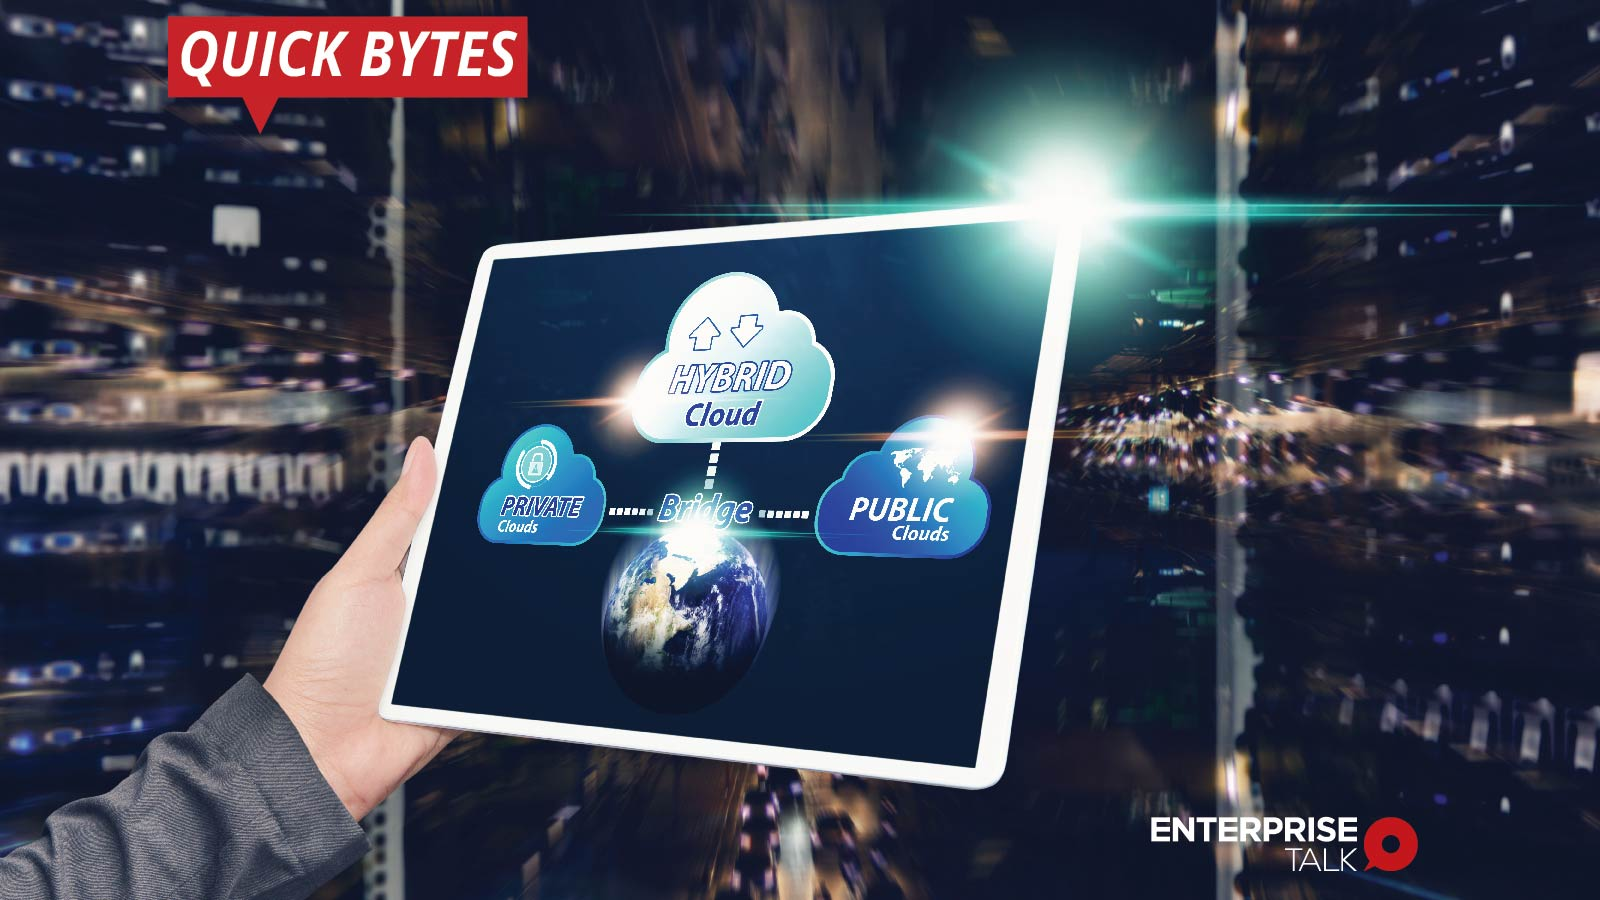 COVID-19 Pandemic Saw a Surge in Hybrid Cloud and low-code approaches